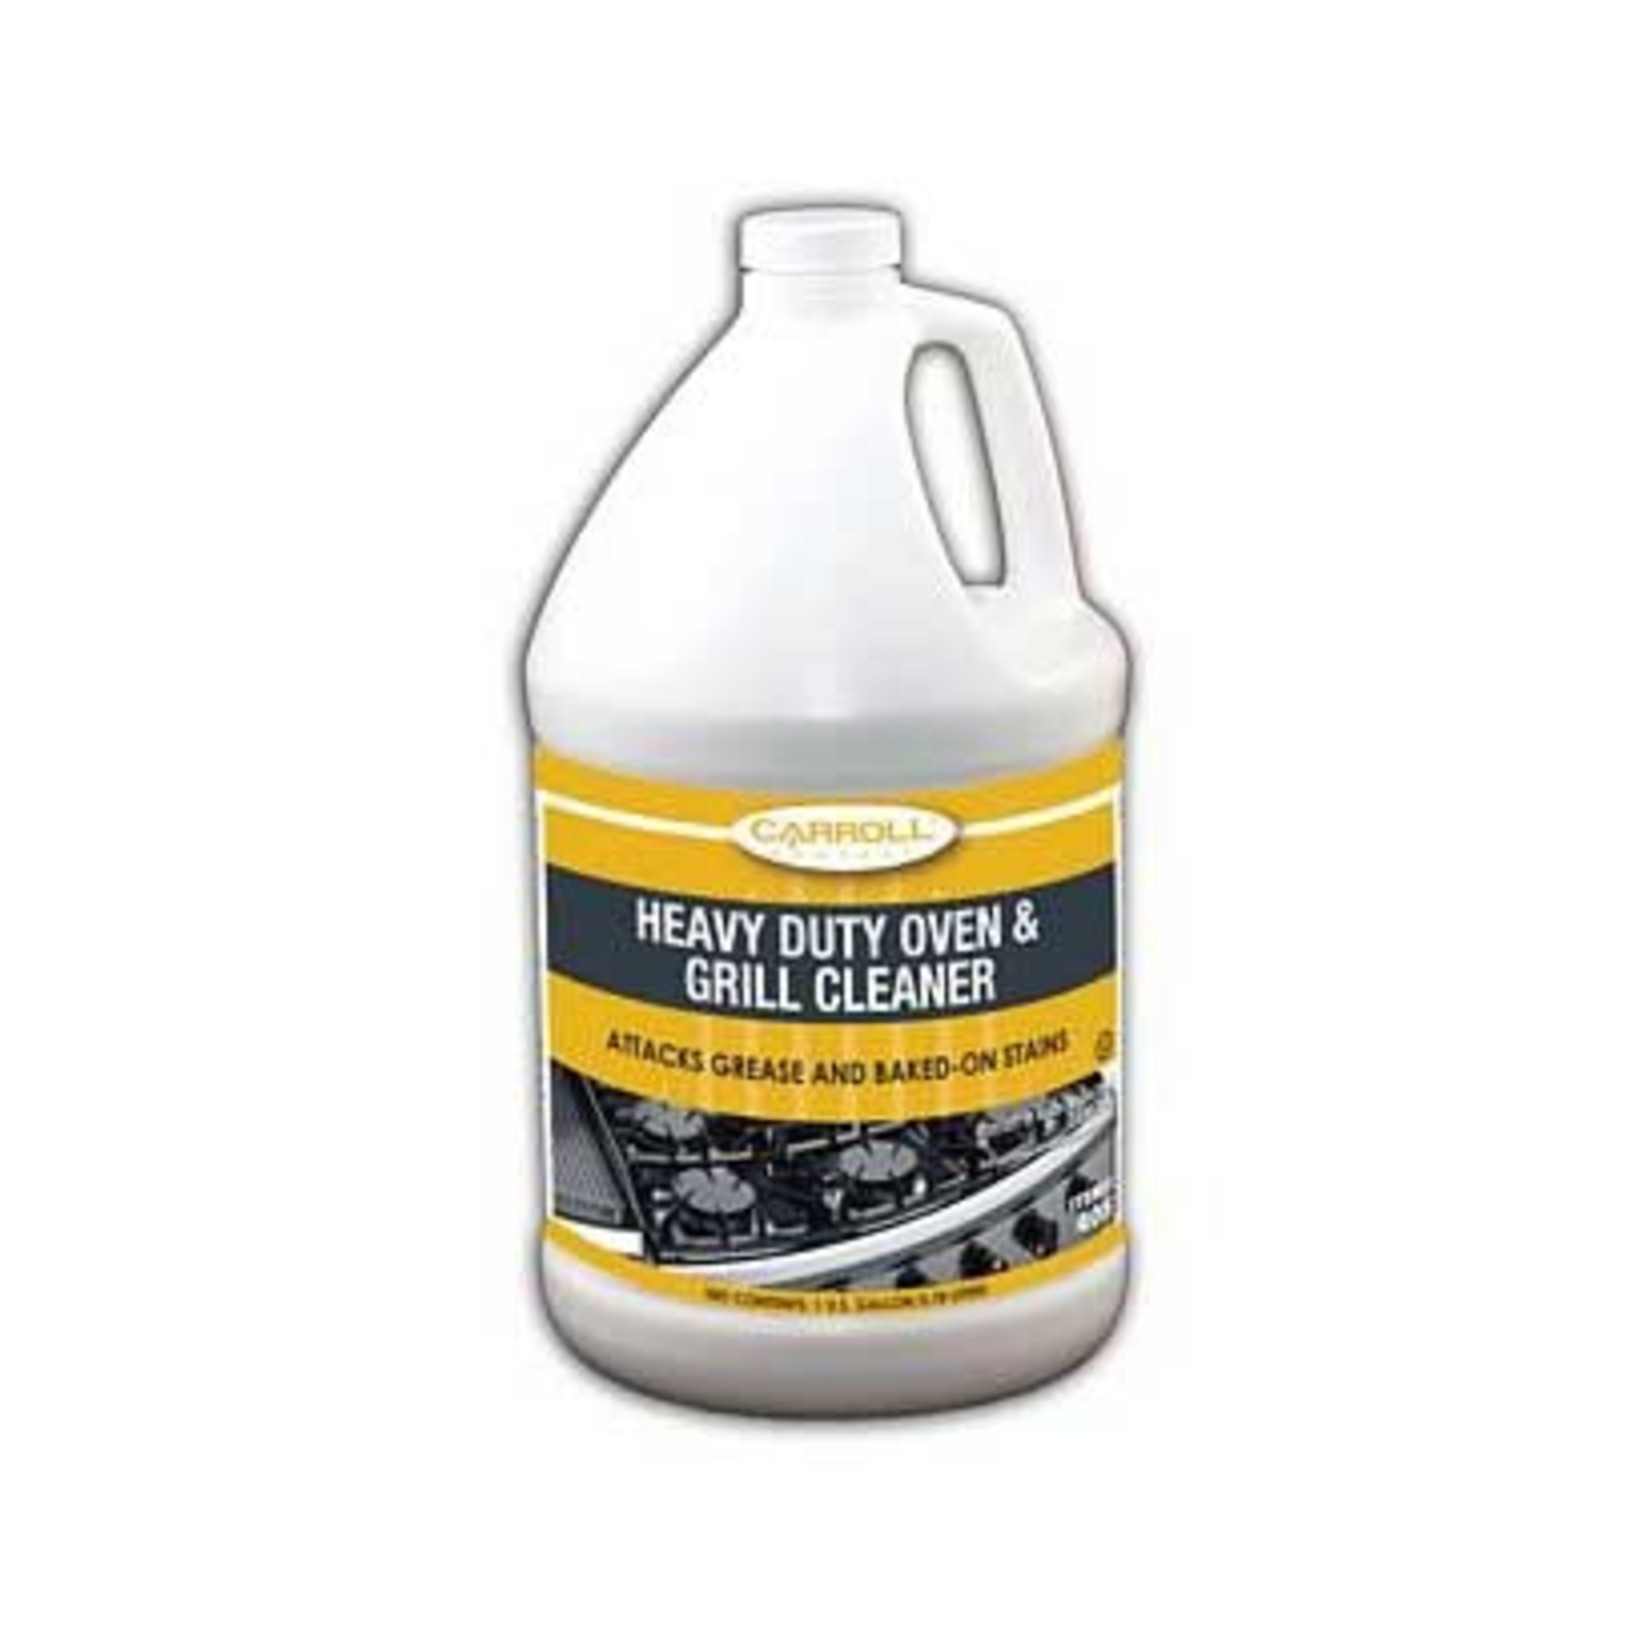 Carroll Heavy Duty Oven & Grill Cleaner - Gallon